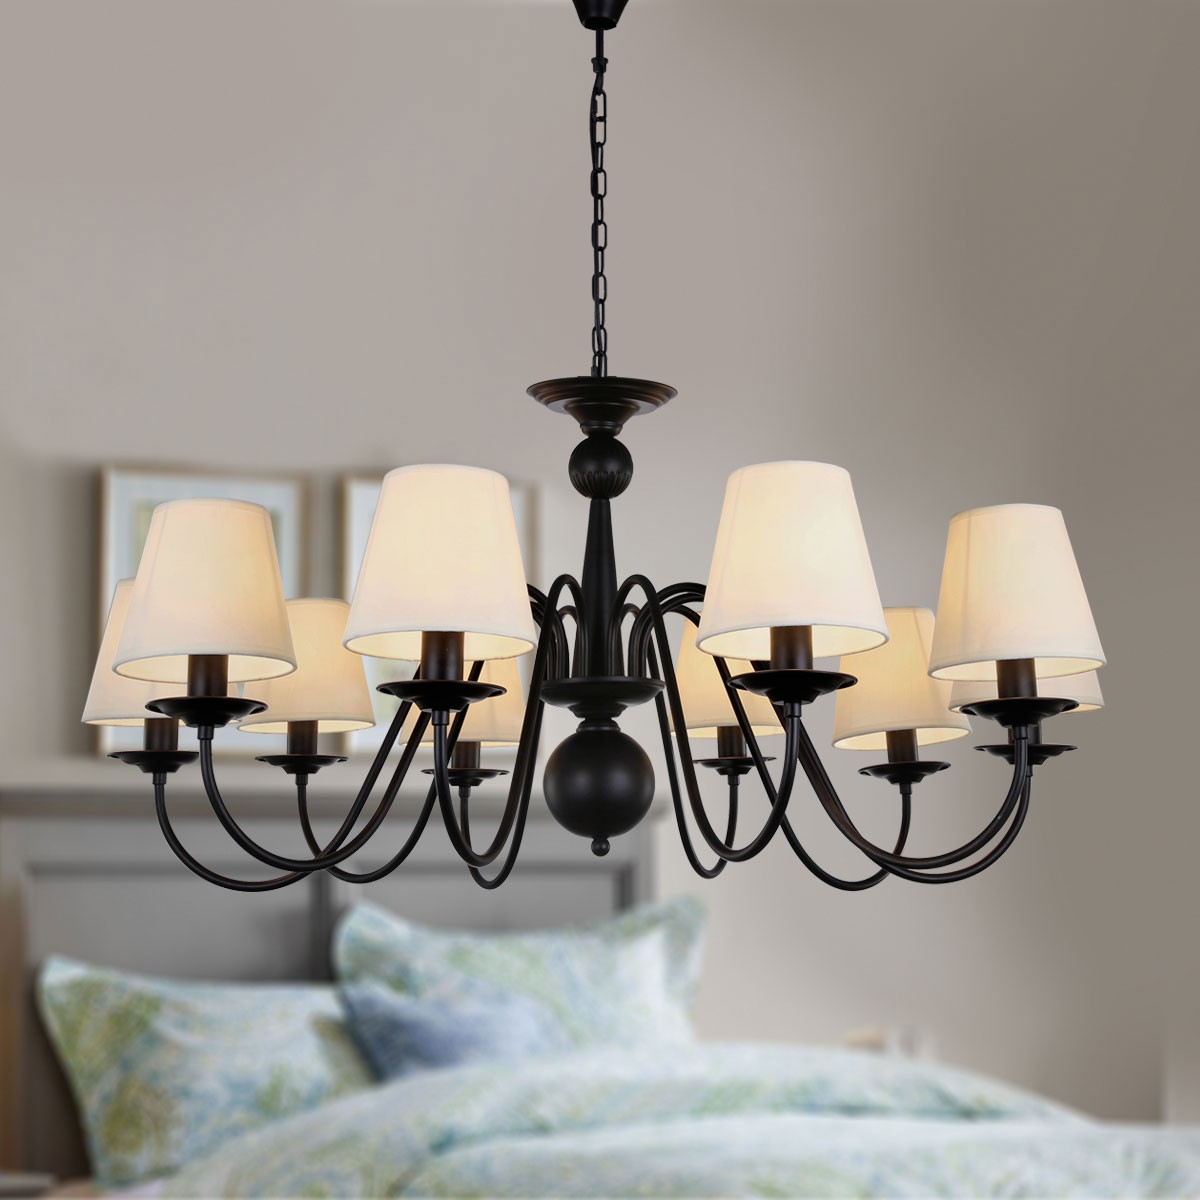 10-Light Black Wrought Iron Chandelier with Cloth Shades (DK-2016-10)